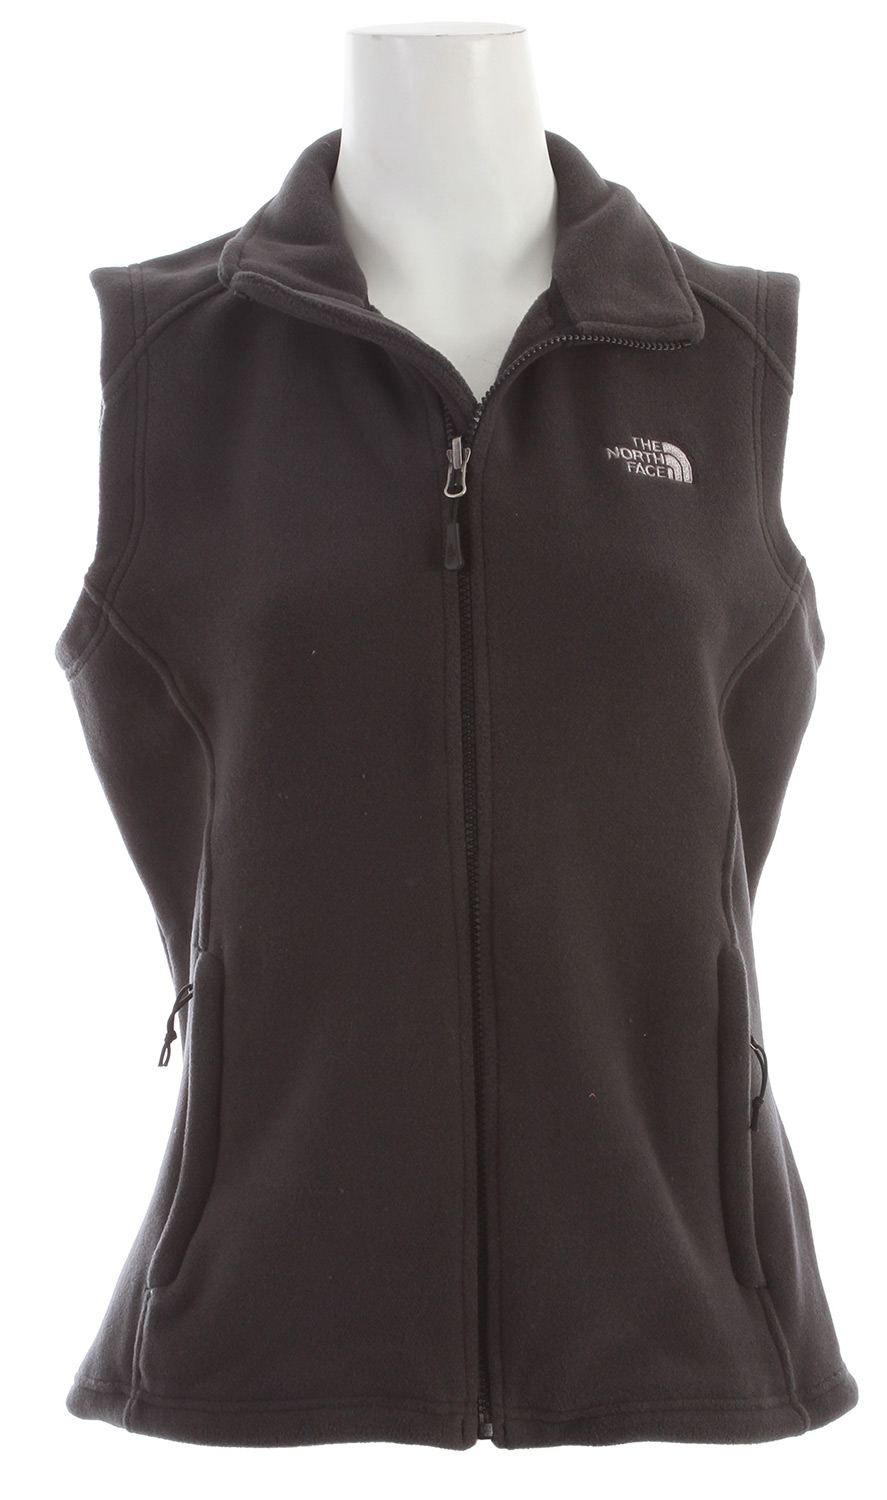 "A midweight, rapid-drying fleece designed to be worn alone or layered on active adventures in colder weather. Features The North Face FlashDry technology, which works with your body to improve dry time.Key Features of The North Face RDT 300 Vest: 300-weight fleece with FlashDry fibers to increase dry time Zip-in compatible integration with complementing garments from The North Face Two secure hand pockets Hem cinch-cord Avg weight: 301g Center Back: 25"" Fabric: RDT 300-weight fleece with FlashDry - $52.95"